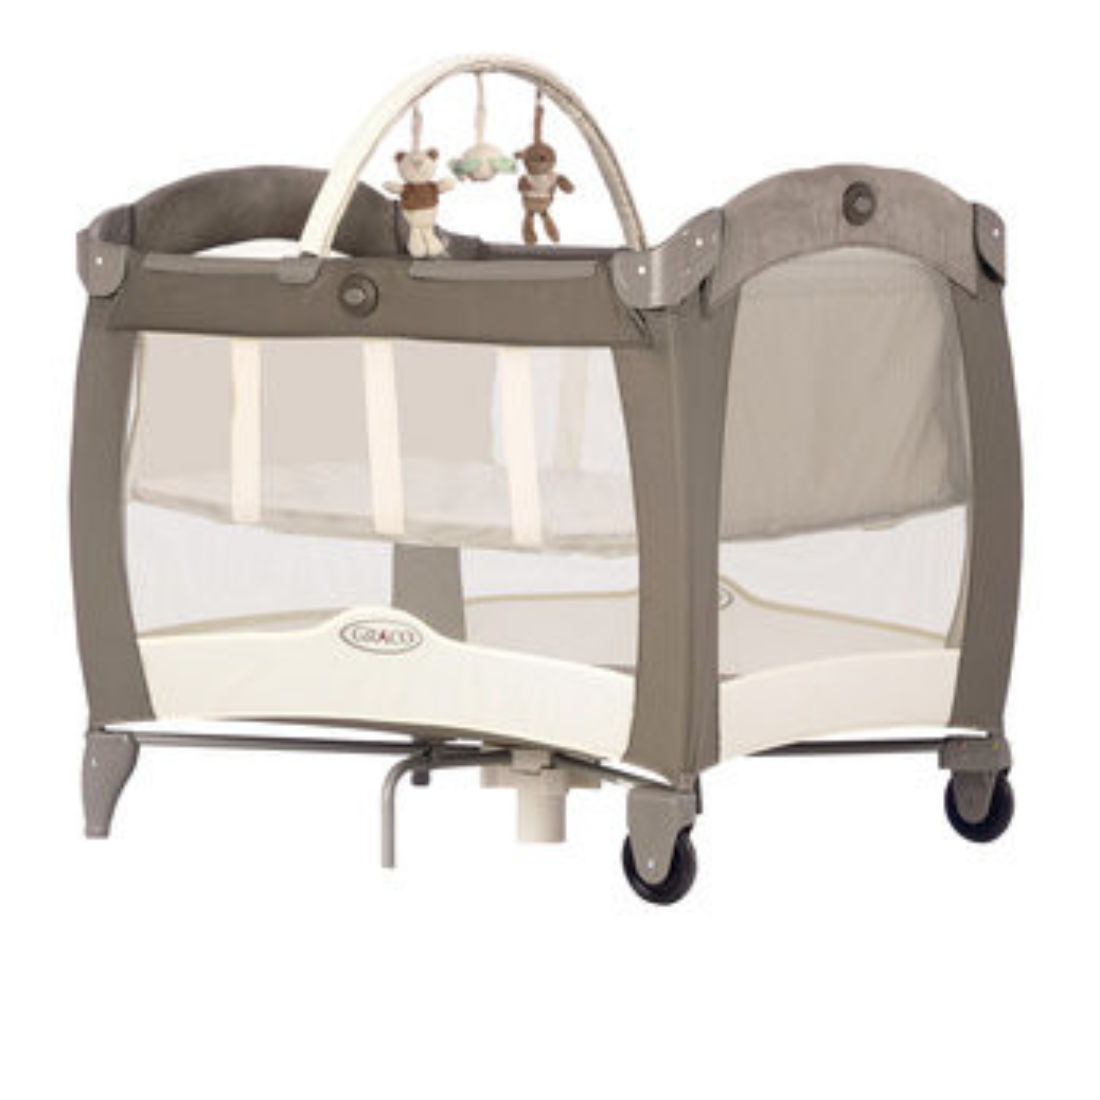 Babies R Us Travel Cot in Blue Review